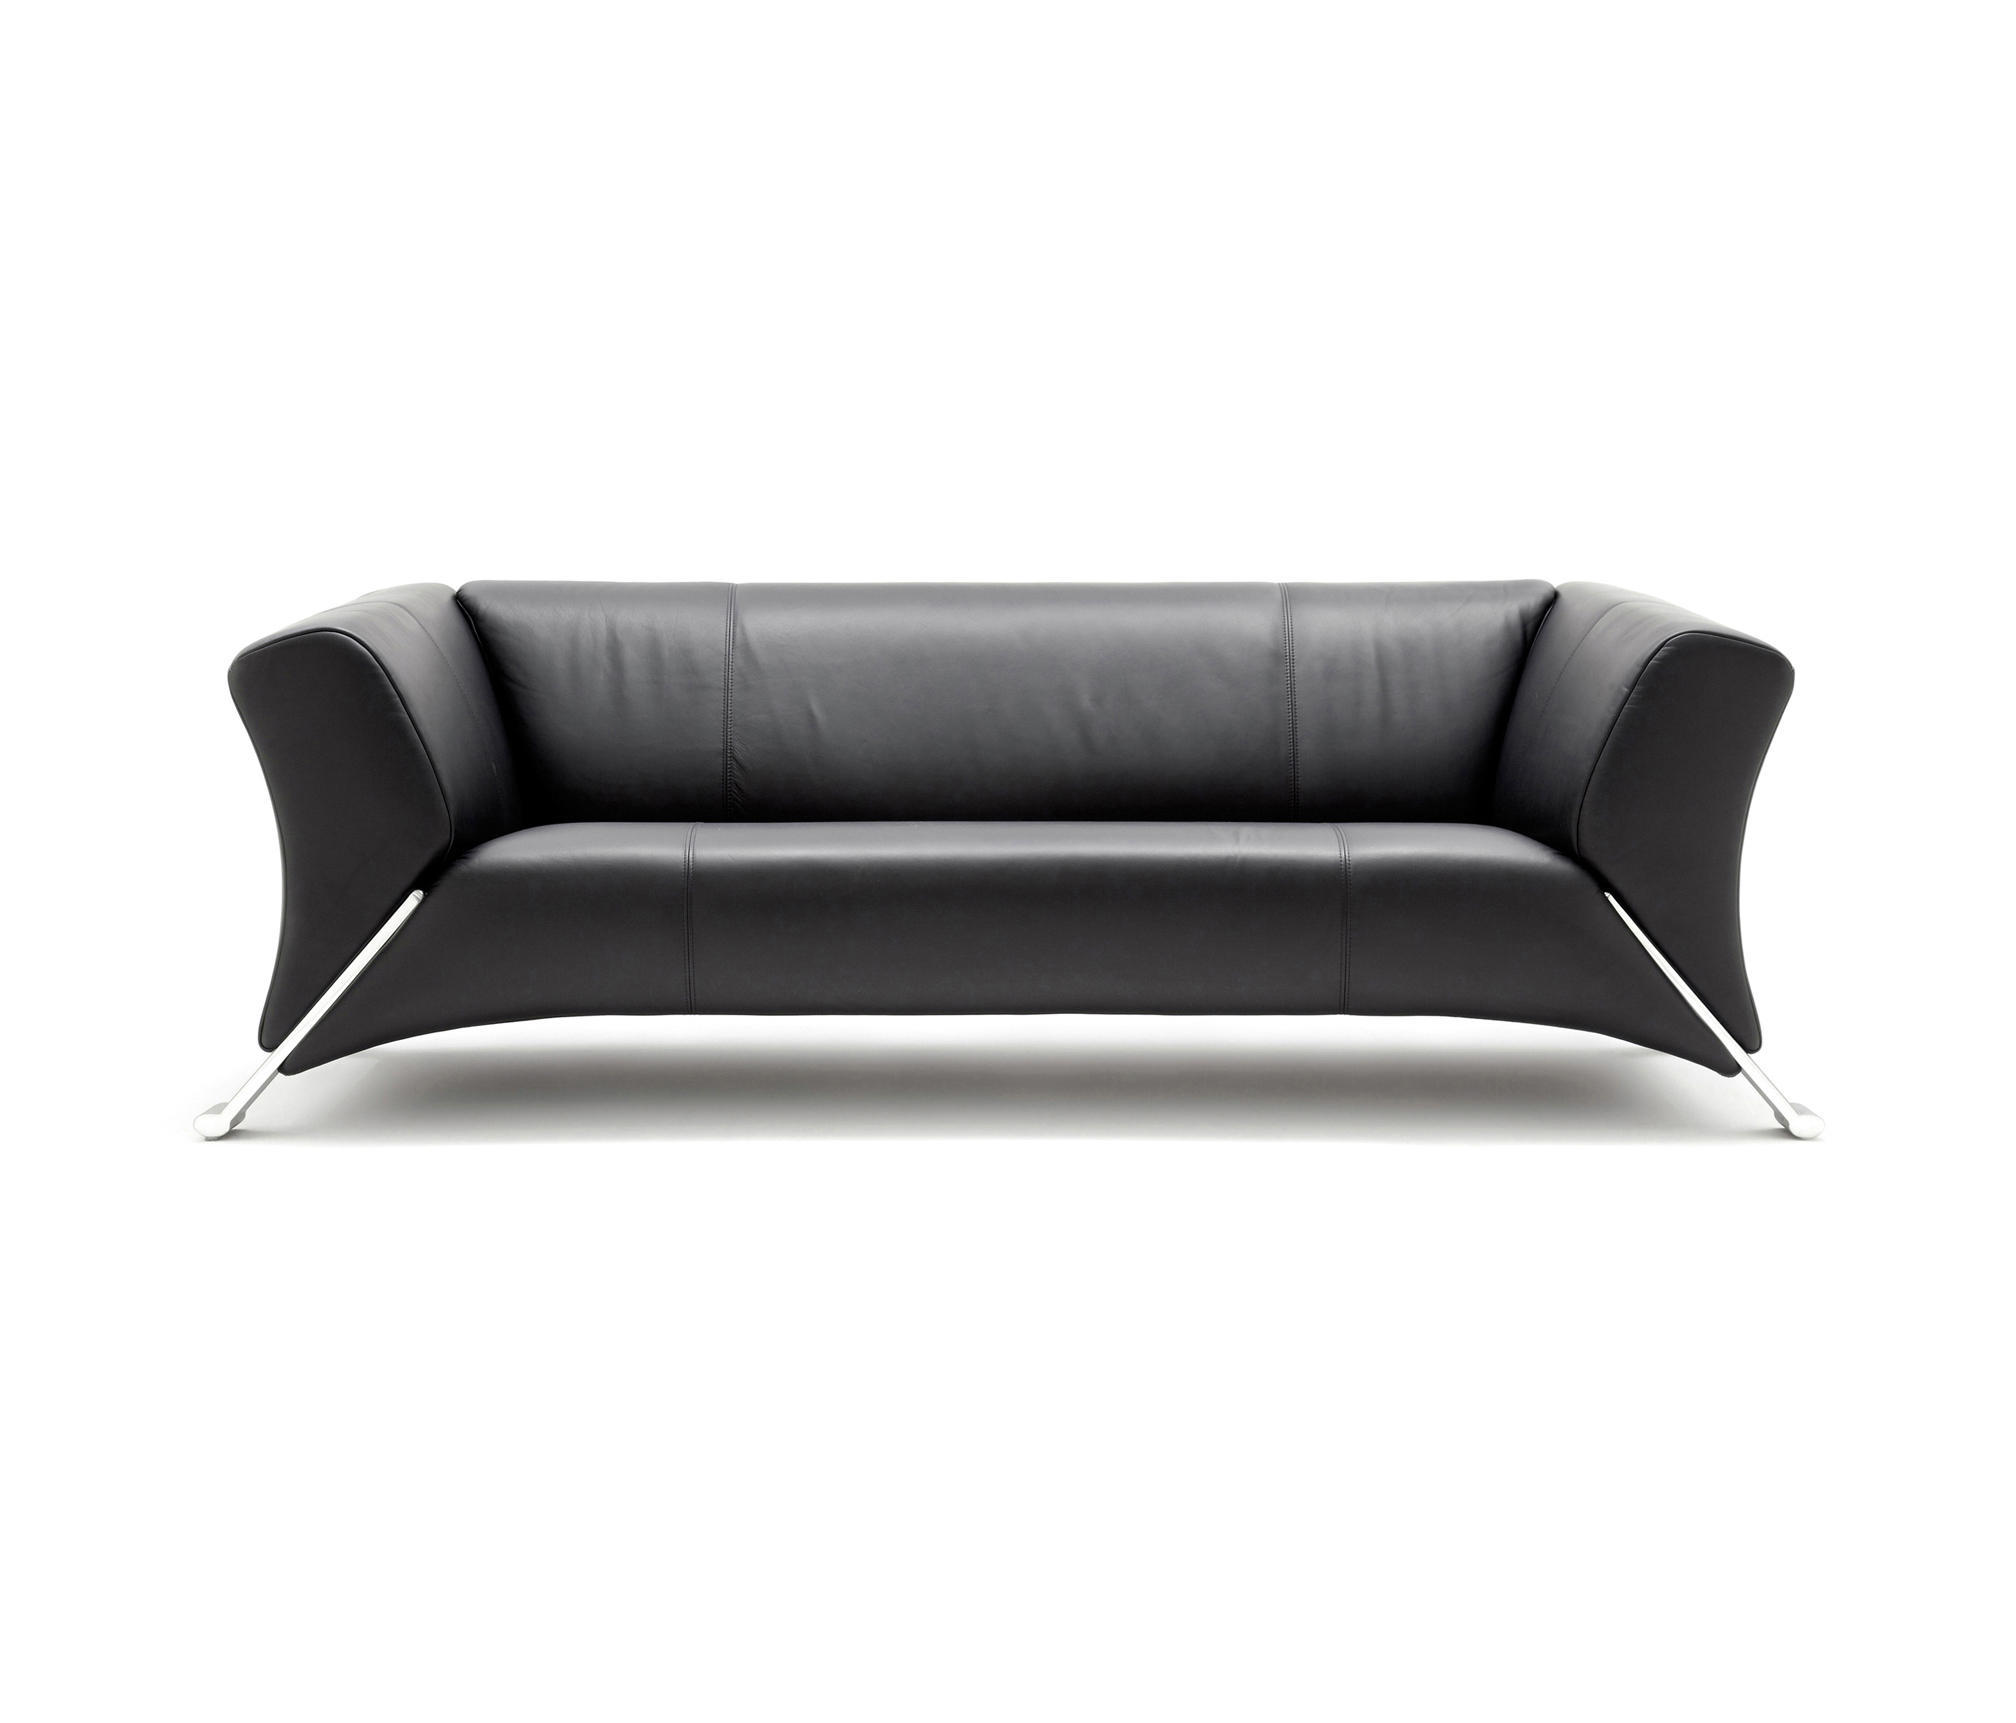 rolf benz sofa 322 sofa menzilperde net. Black Bedroom Furniture Sets. Home Design Ideas